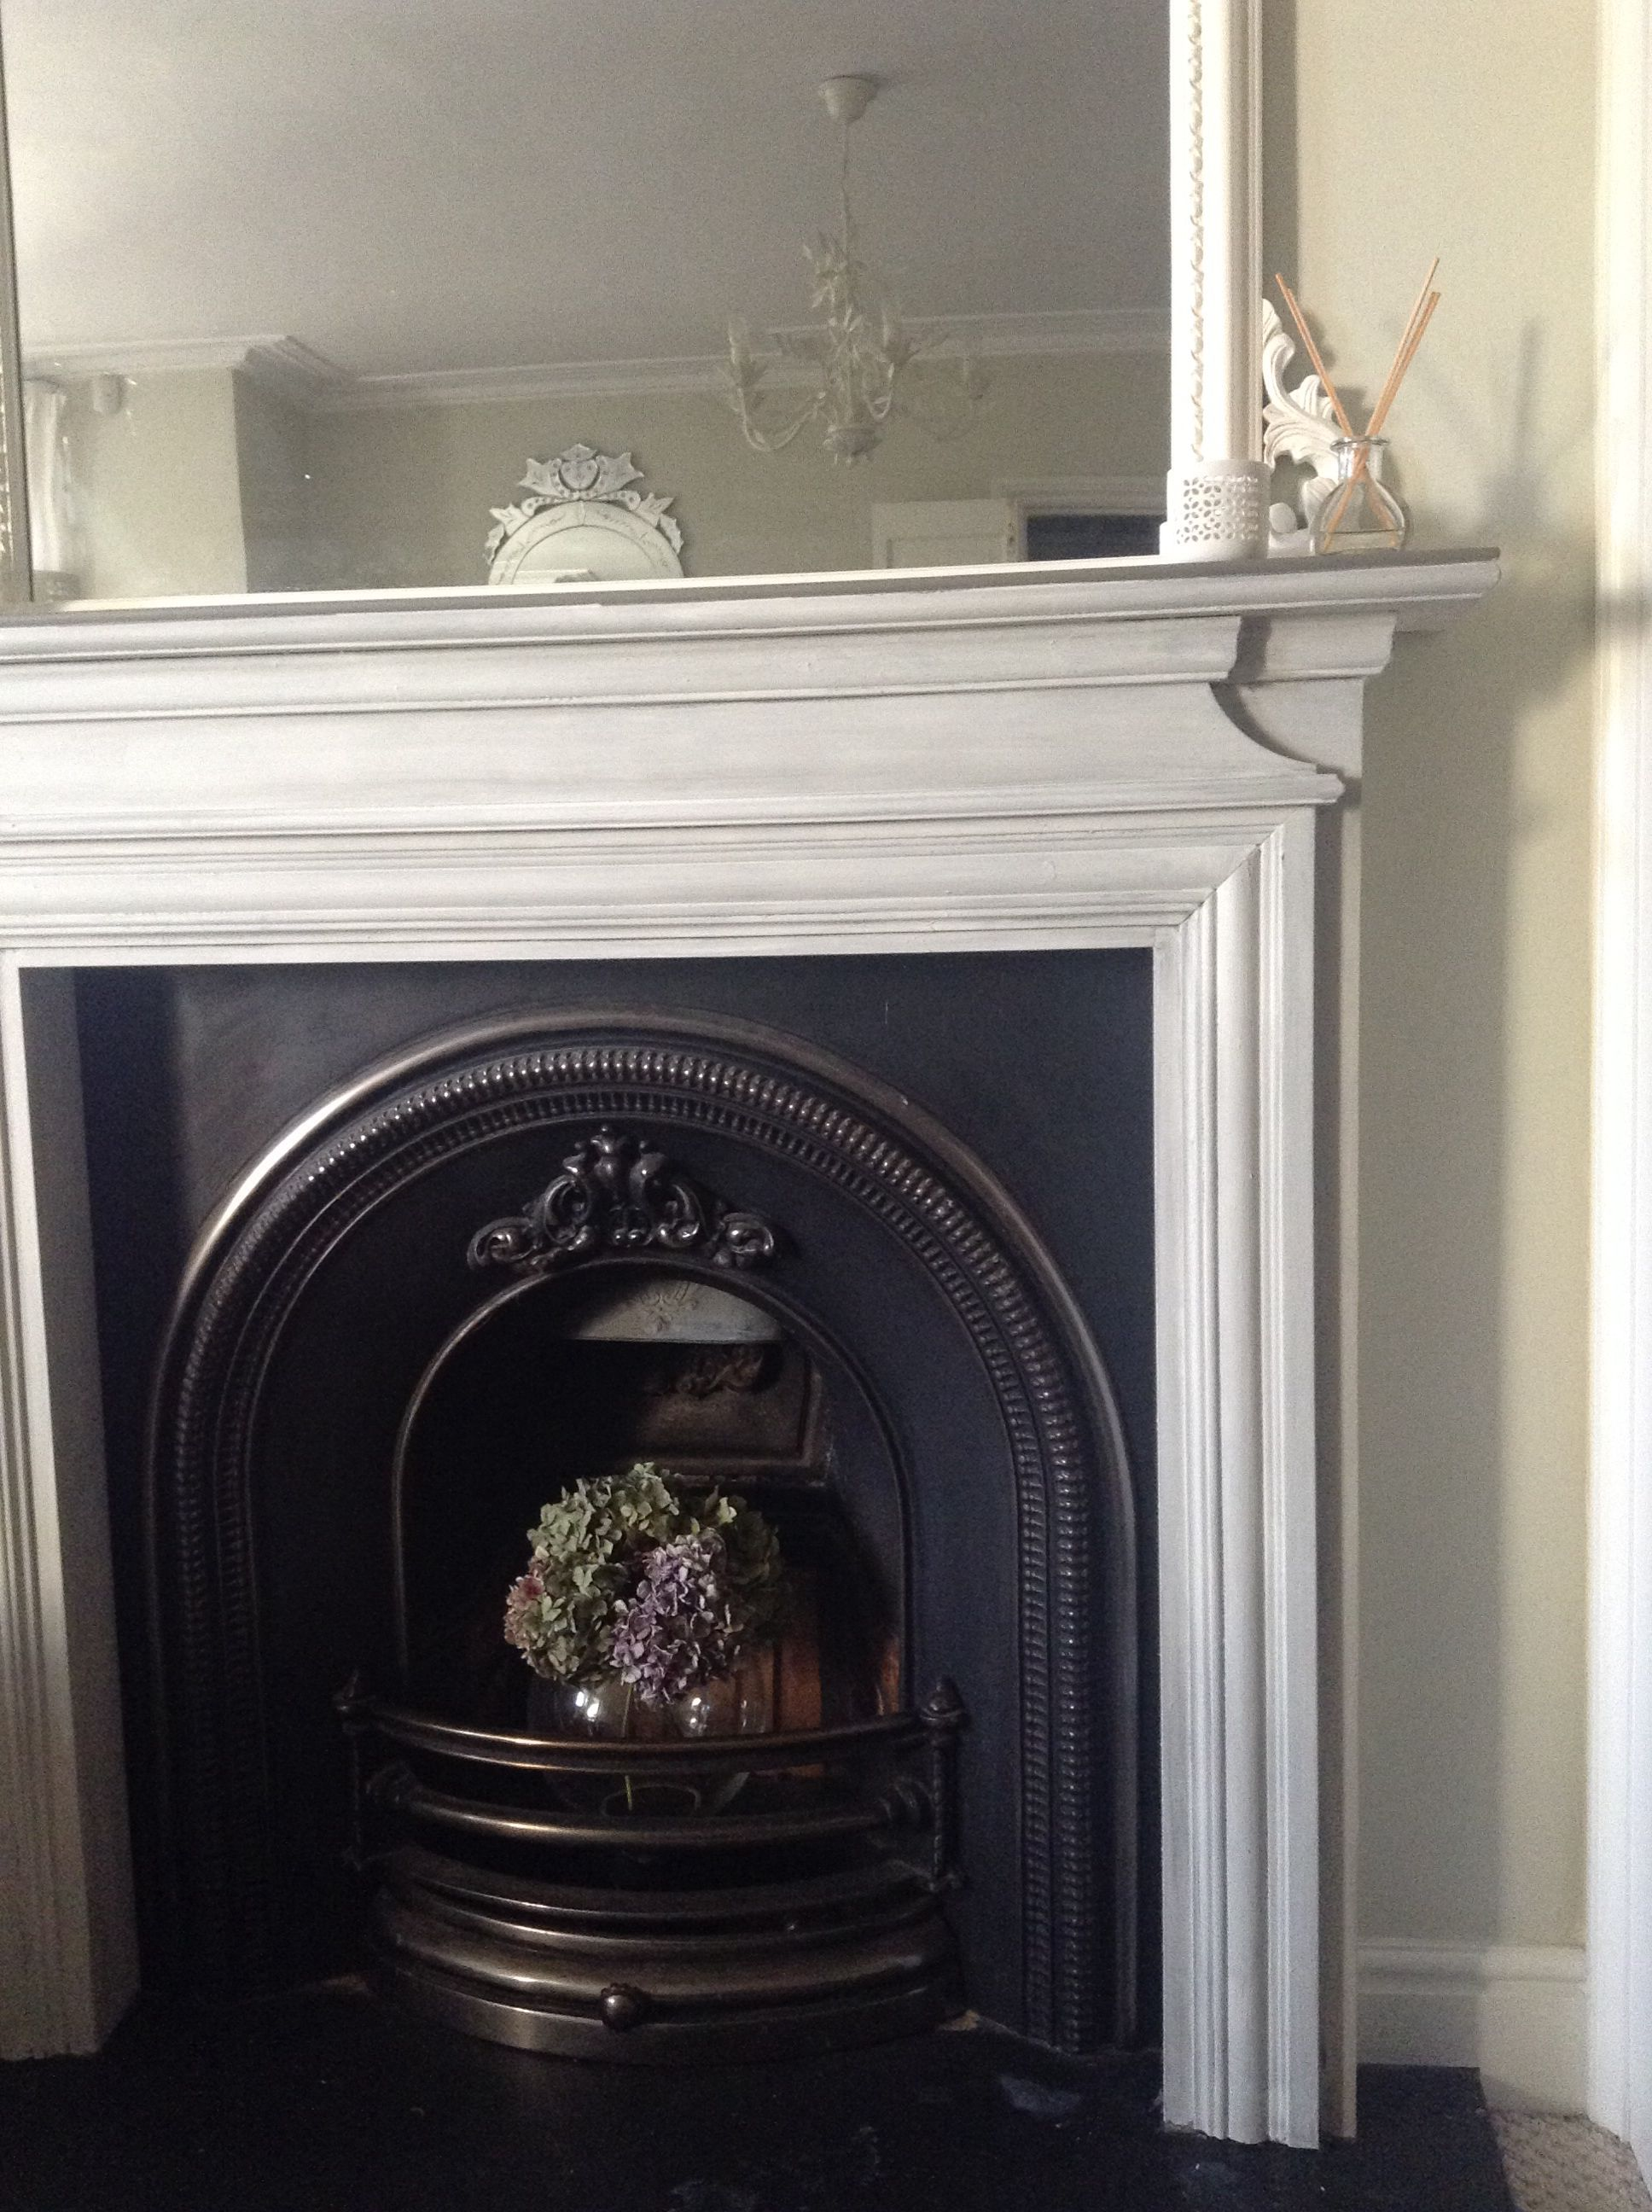 Fireplace Makeover In Annie Sloan Chalk Paint Undercoat And Mantle French Linen Top Coat Old Whit Painted Fire Surround Cottage Fireplace Diy Furniture Gifts